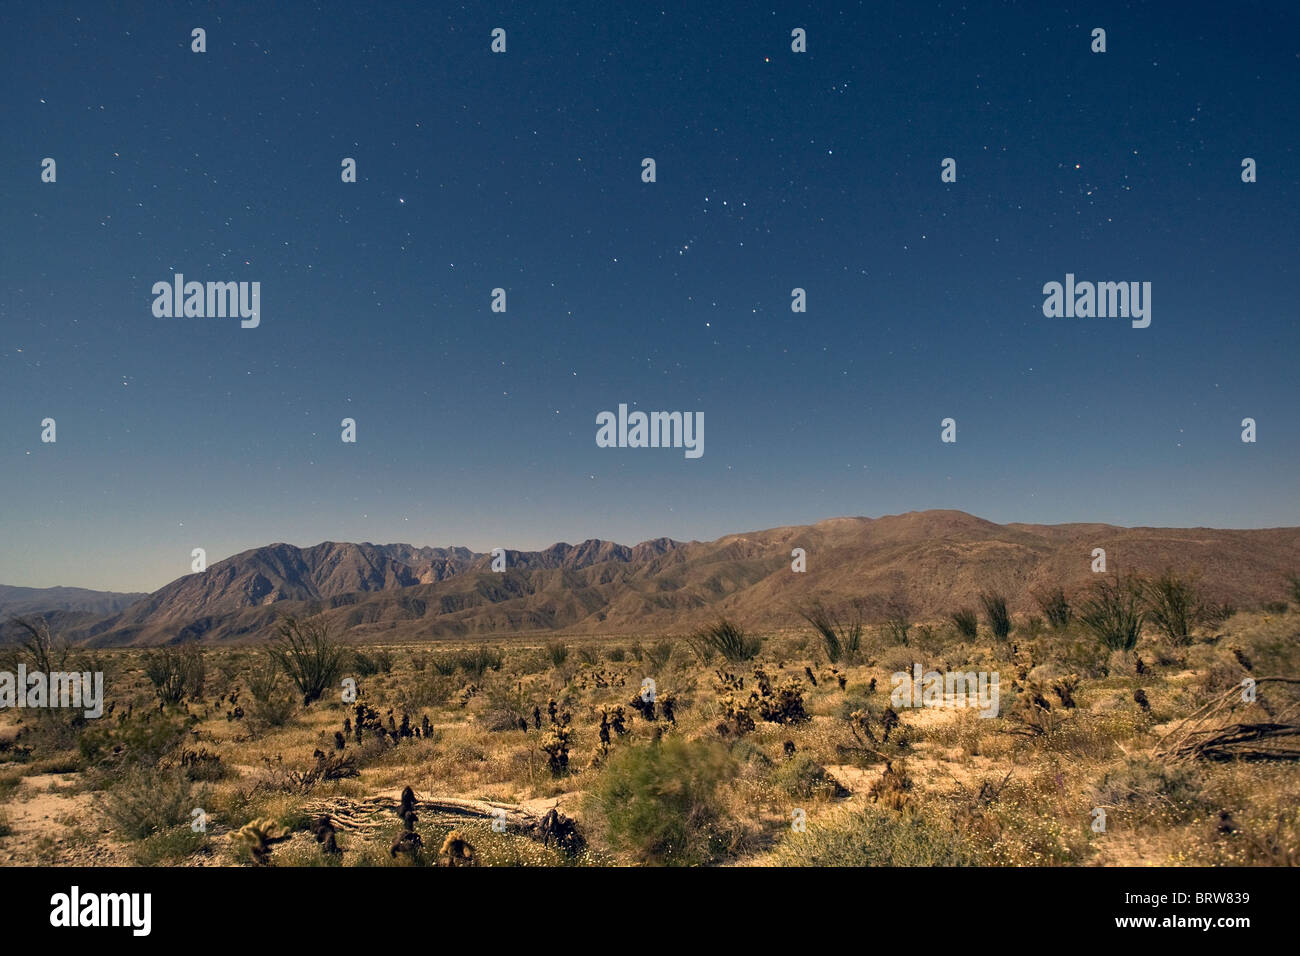 Clear night sky in Anza Borrego Desert State Park, California. - Stock Image